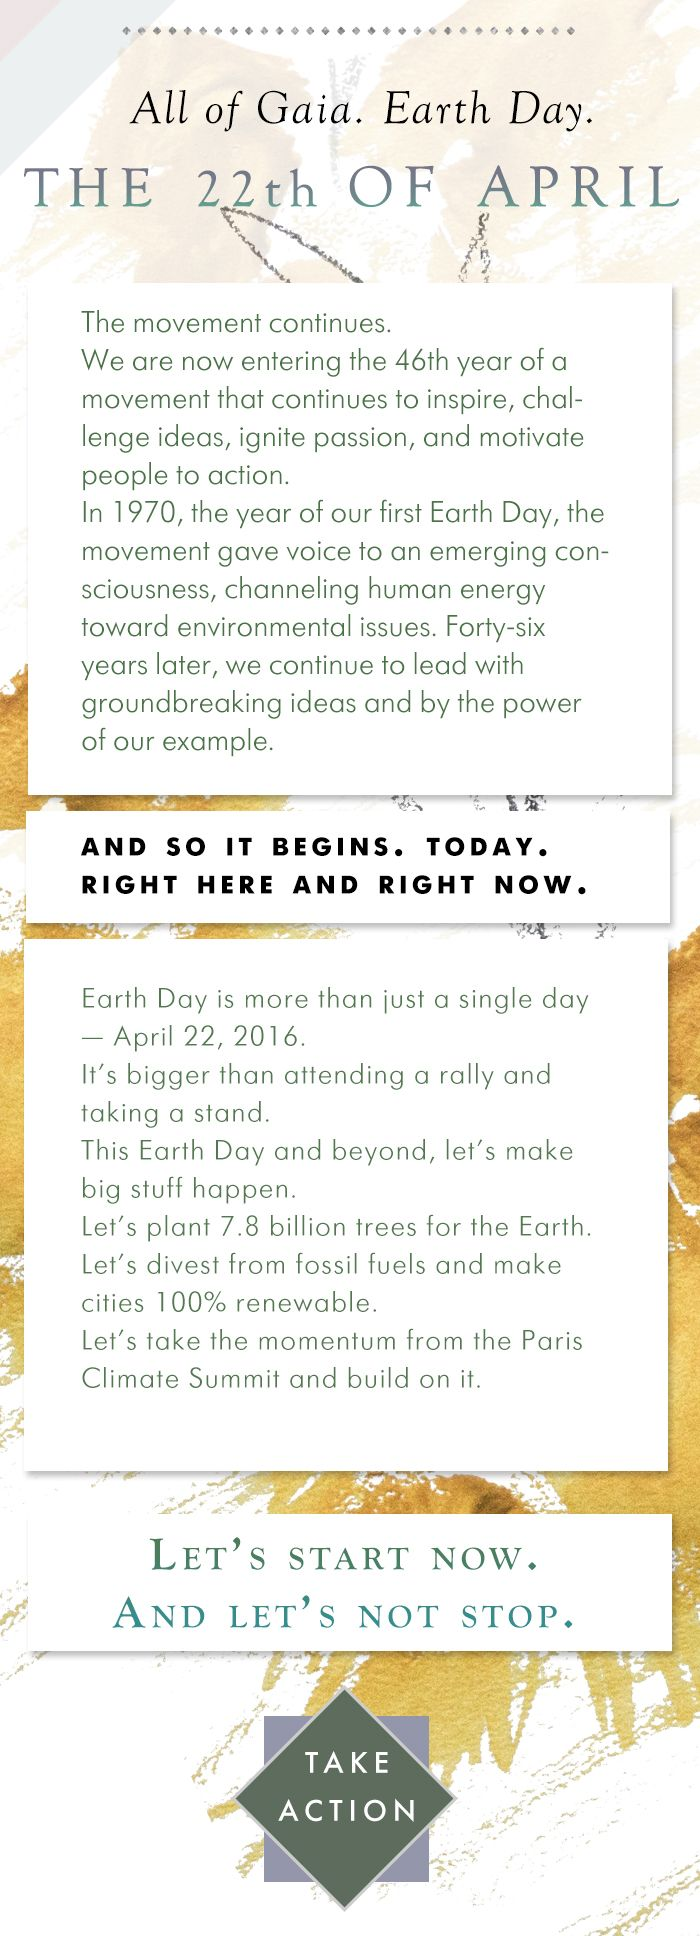 Join our Aloha Gaia Jewelry (alohagaia.com) mailing list - eepurl.com/buW2oj #alohagaia #webdesign #subscribe #Earth #day